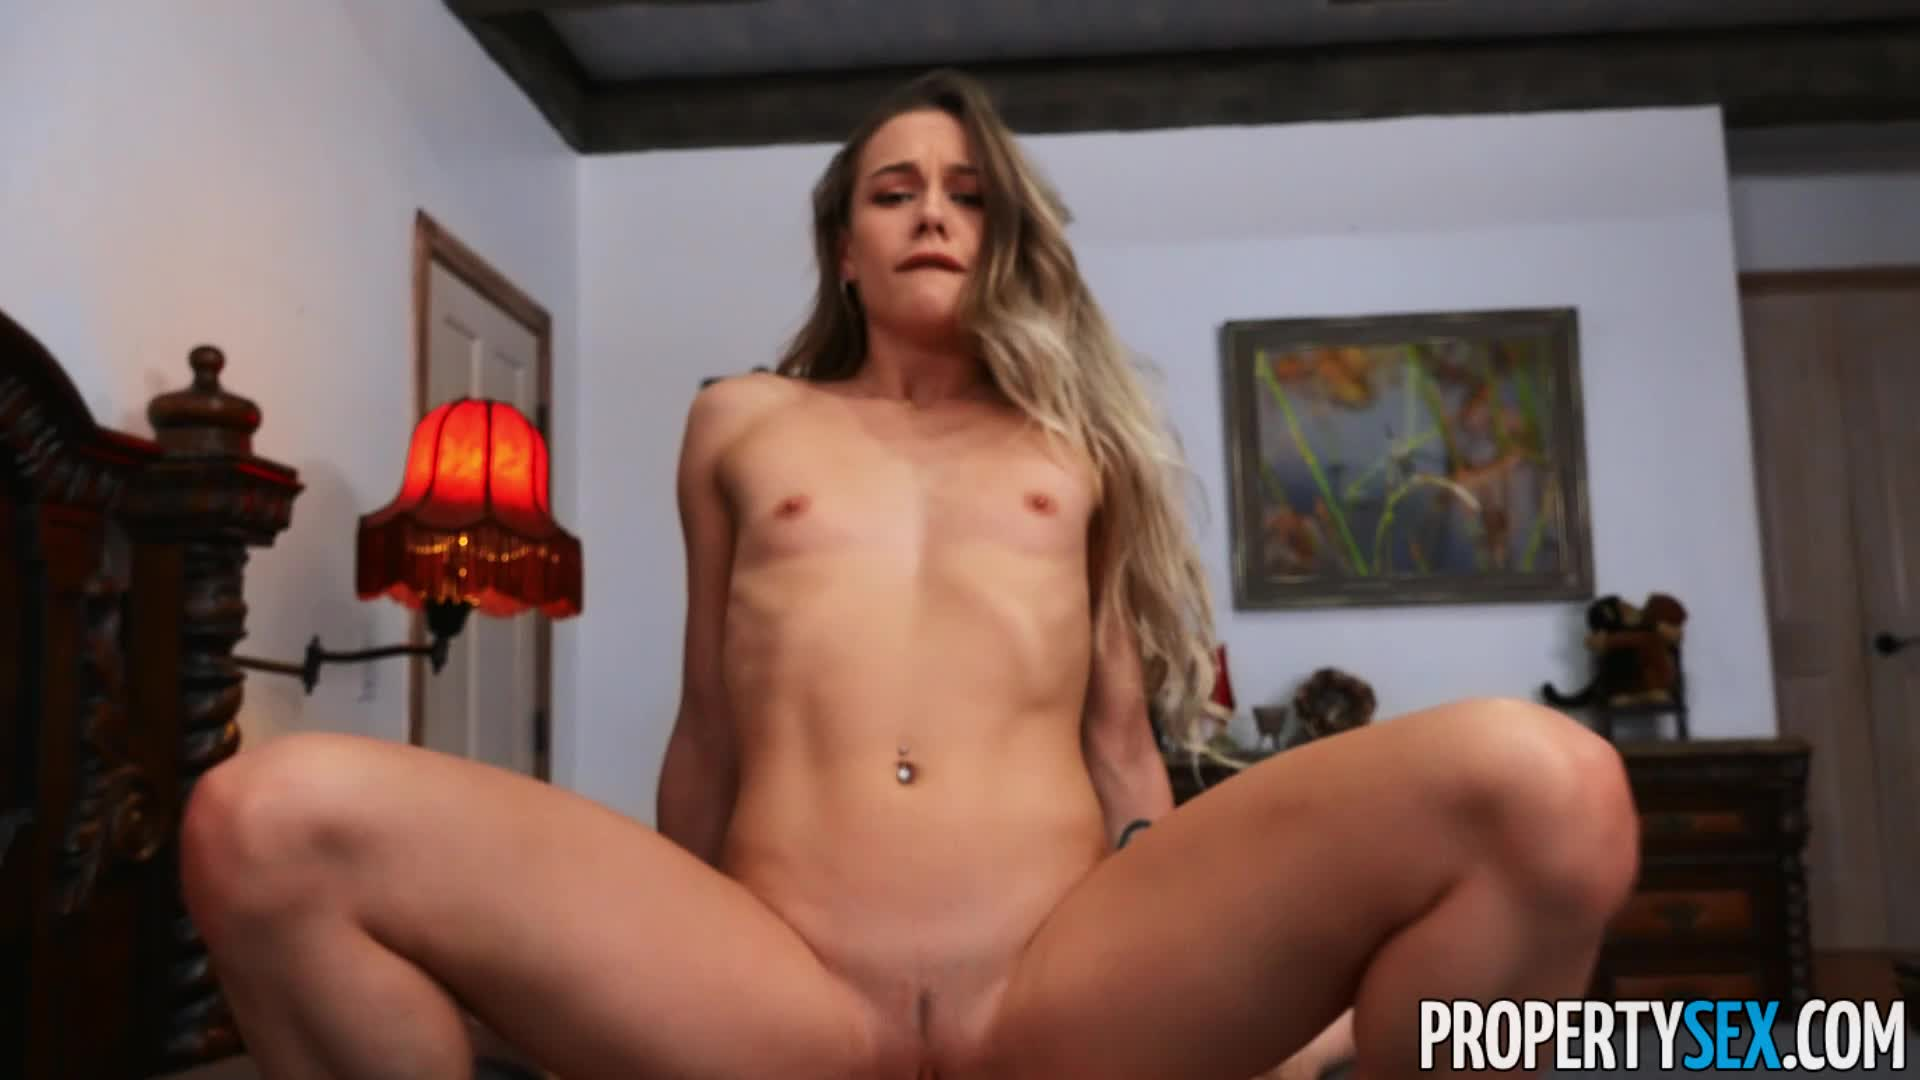 Naomi Swann - A Personal Thank You - k2s.tv